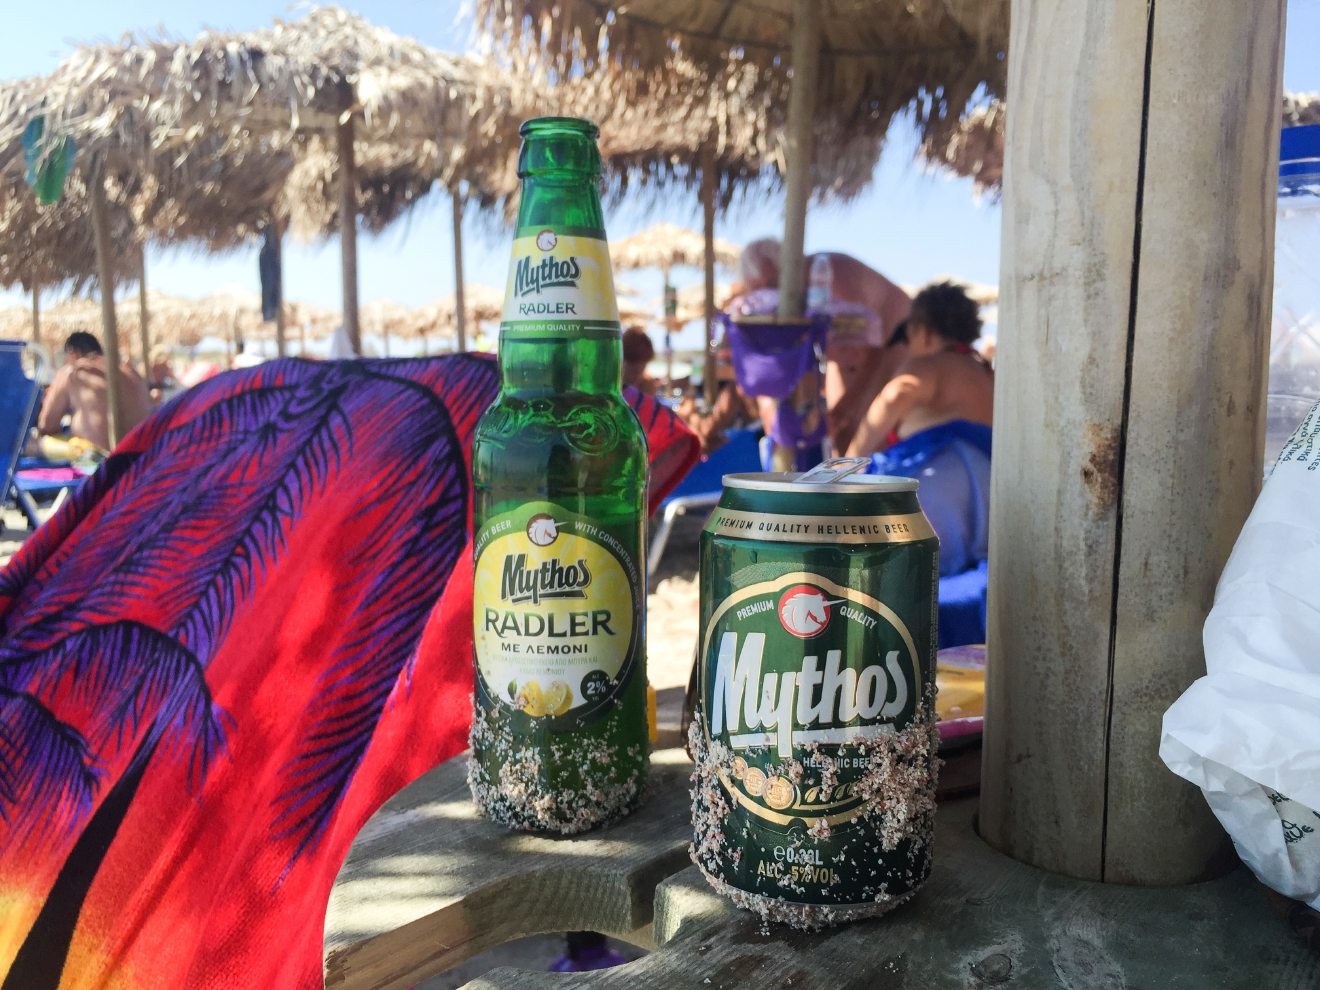 Mythos, a beer whose official mascot is a unicorn, is best enjoyed on the pink sands of Elafonisi.  It is widely held that one of the best ways to get to know a new place or culture is to indulge in its cuisine. I recently spend a few days in Athens and the Greek island of Crete, and I have to say - all the beach hopping makes a girl hungry! Eating my way to enlightenment is nothing I have a problem with. From moussaka to souvlaki, here's a little food diary from my Grecian vacation. (Image: Chona Kasinger / Seattle Refined)